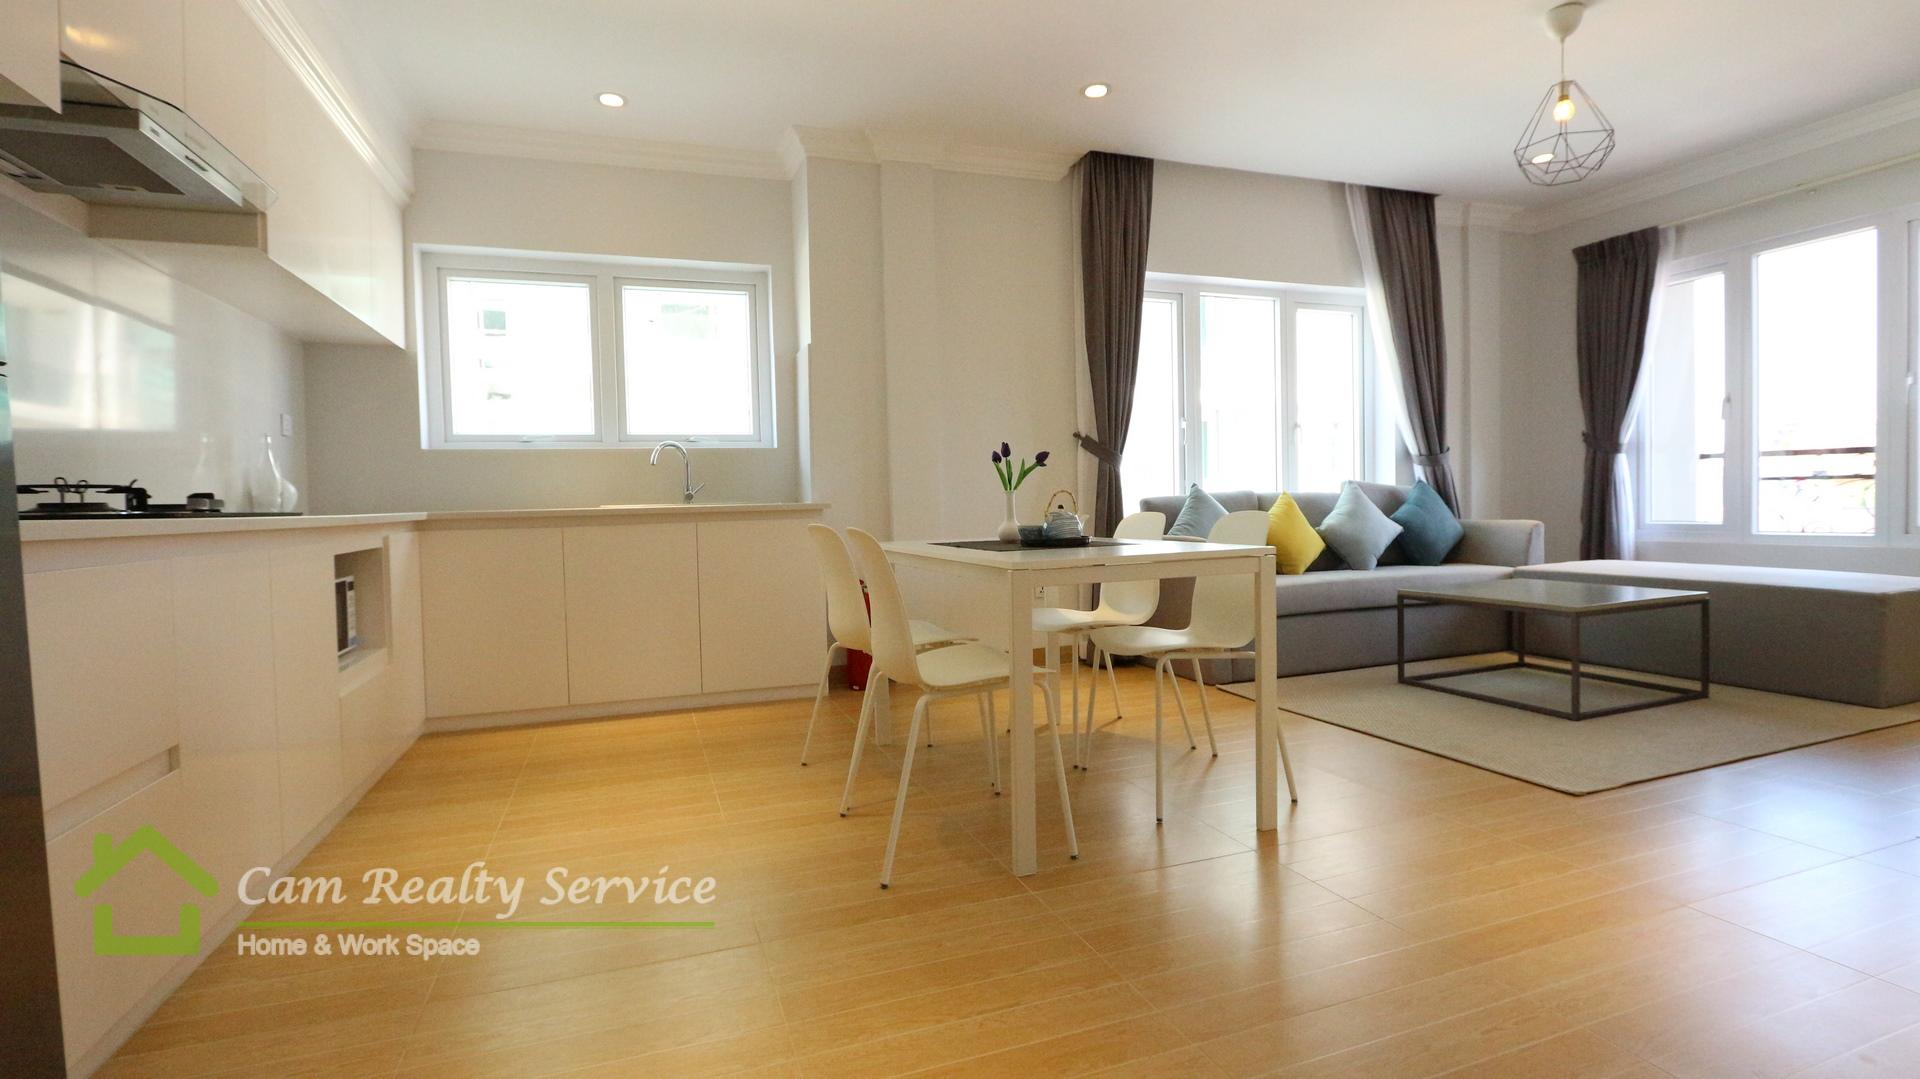 BKK1 area  Modern style 2 bedrooms serviced apartment for rent 1200$/month Up   Phnom Penh   Gym